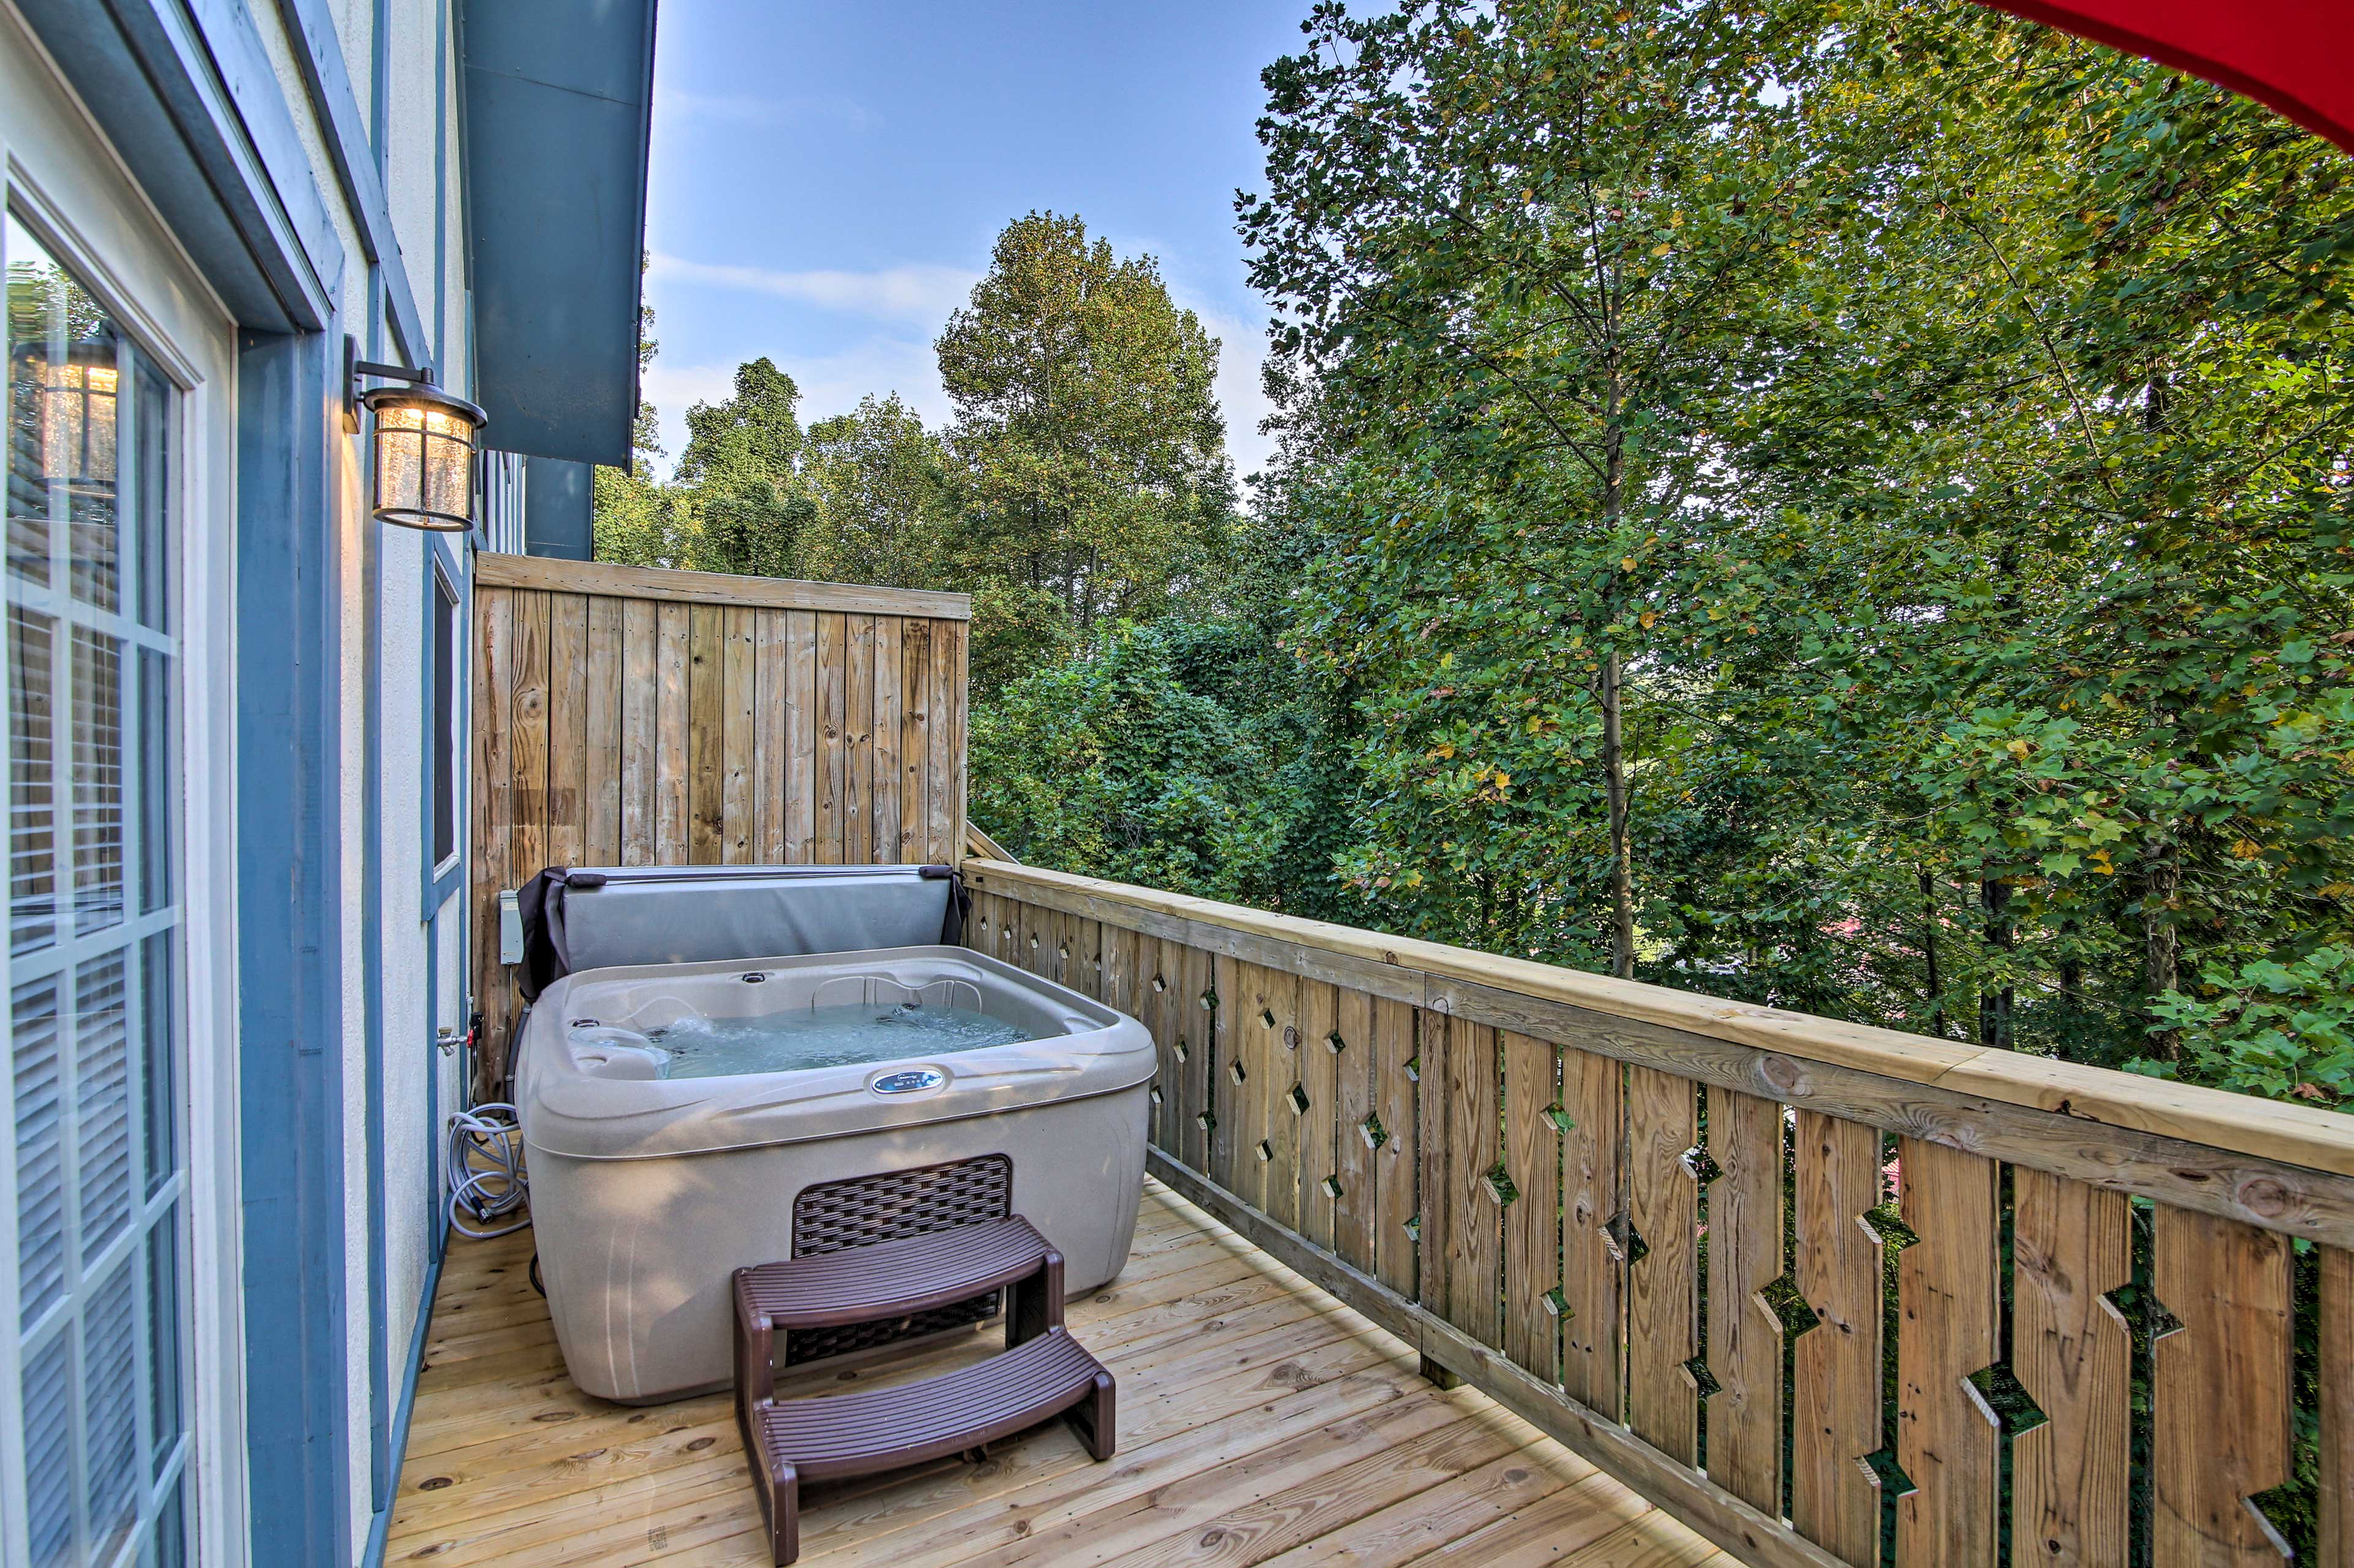 Soak your sore muscles in the private hot tub.